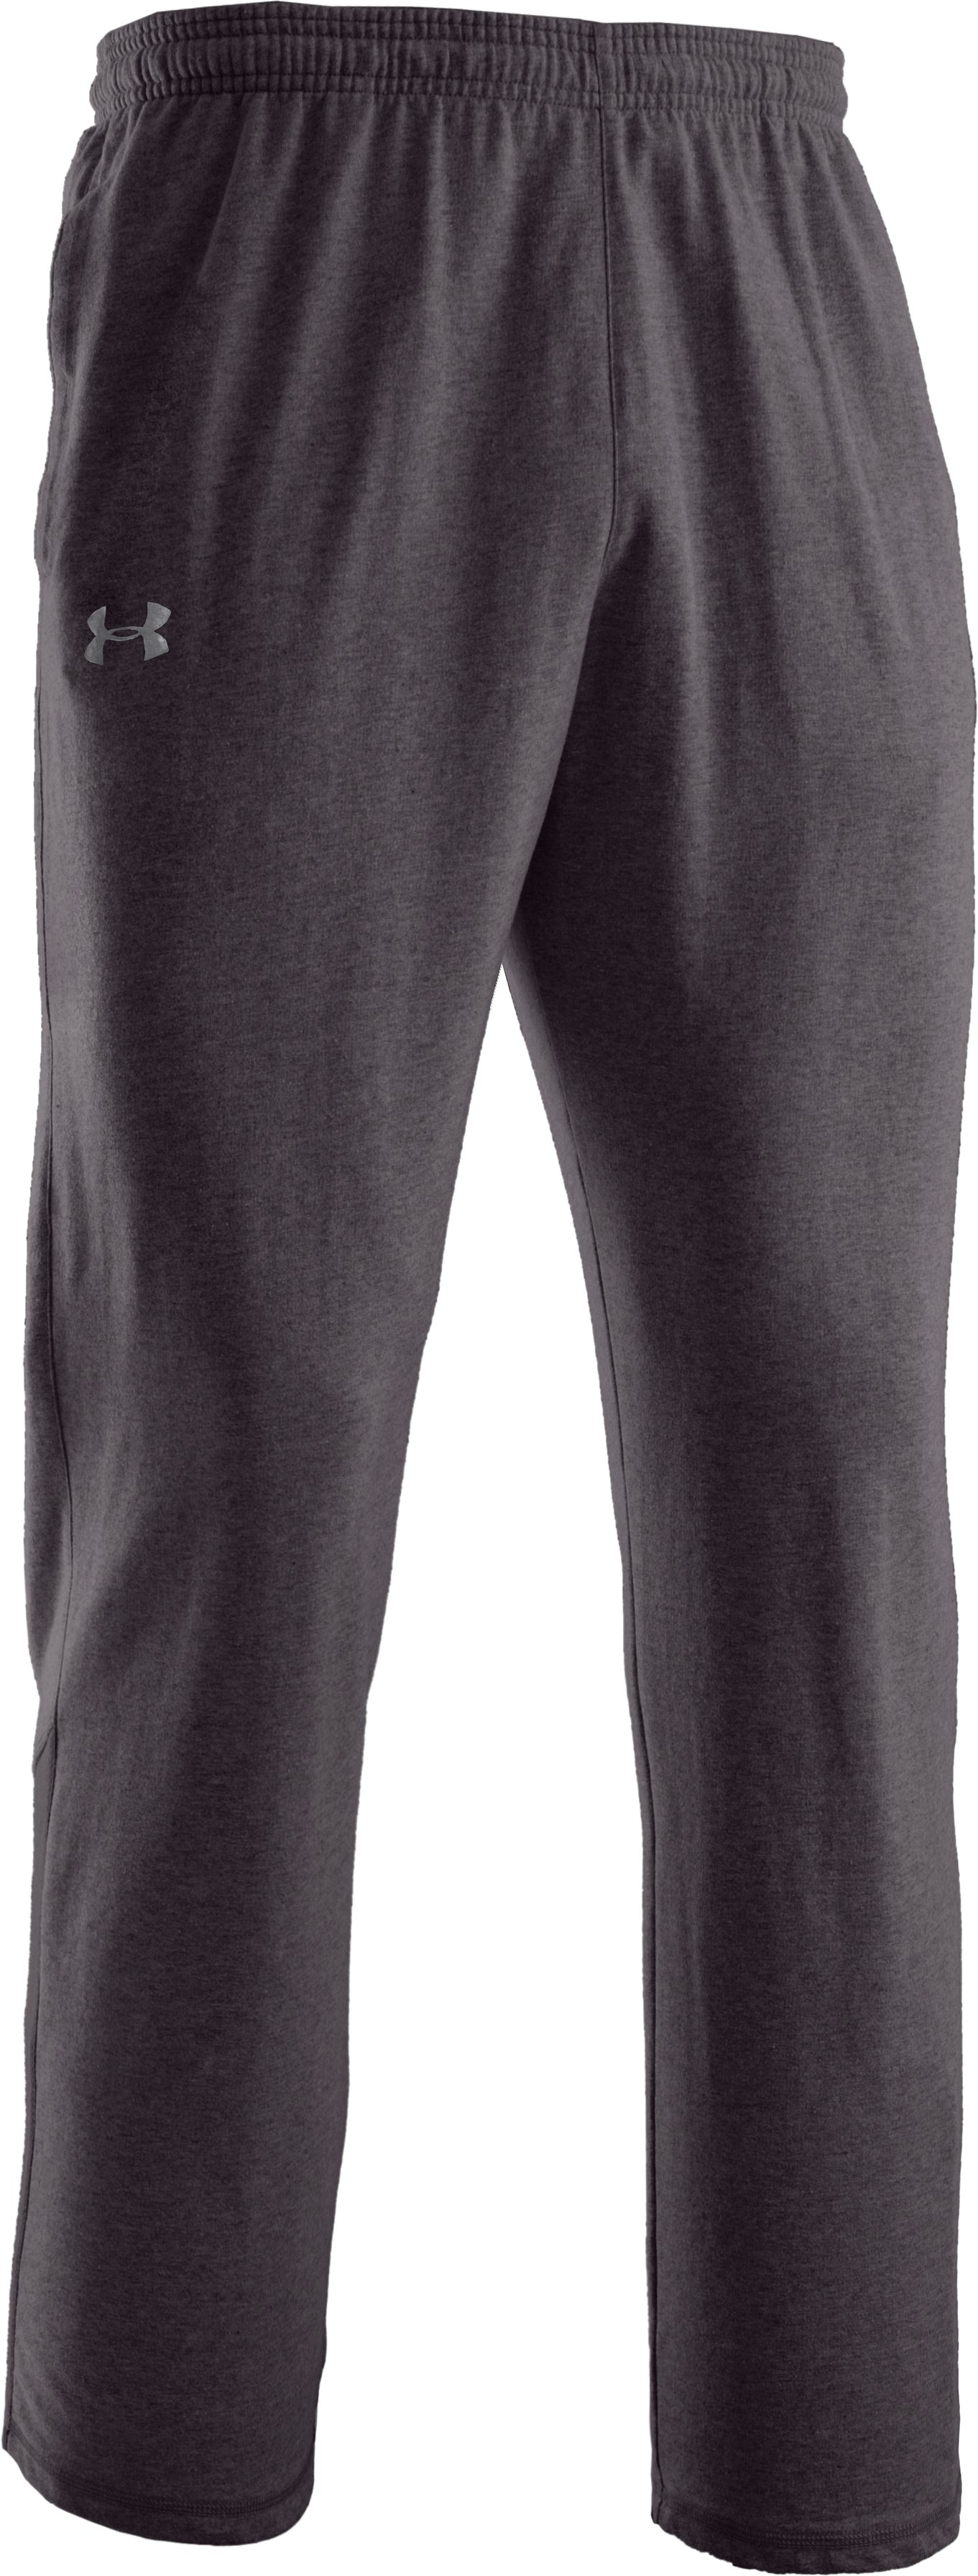 Men's Team Charged Cotton® Storm Pants, Carbon Heather,